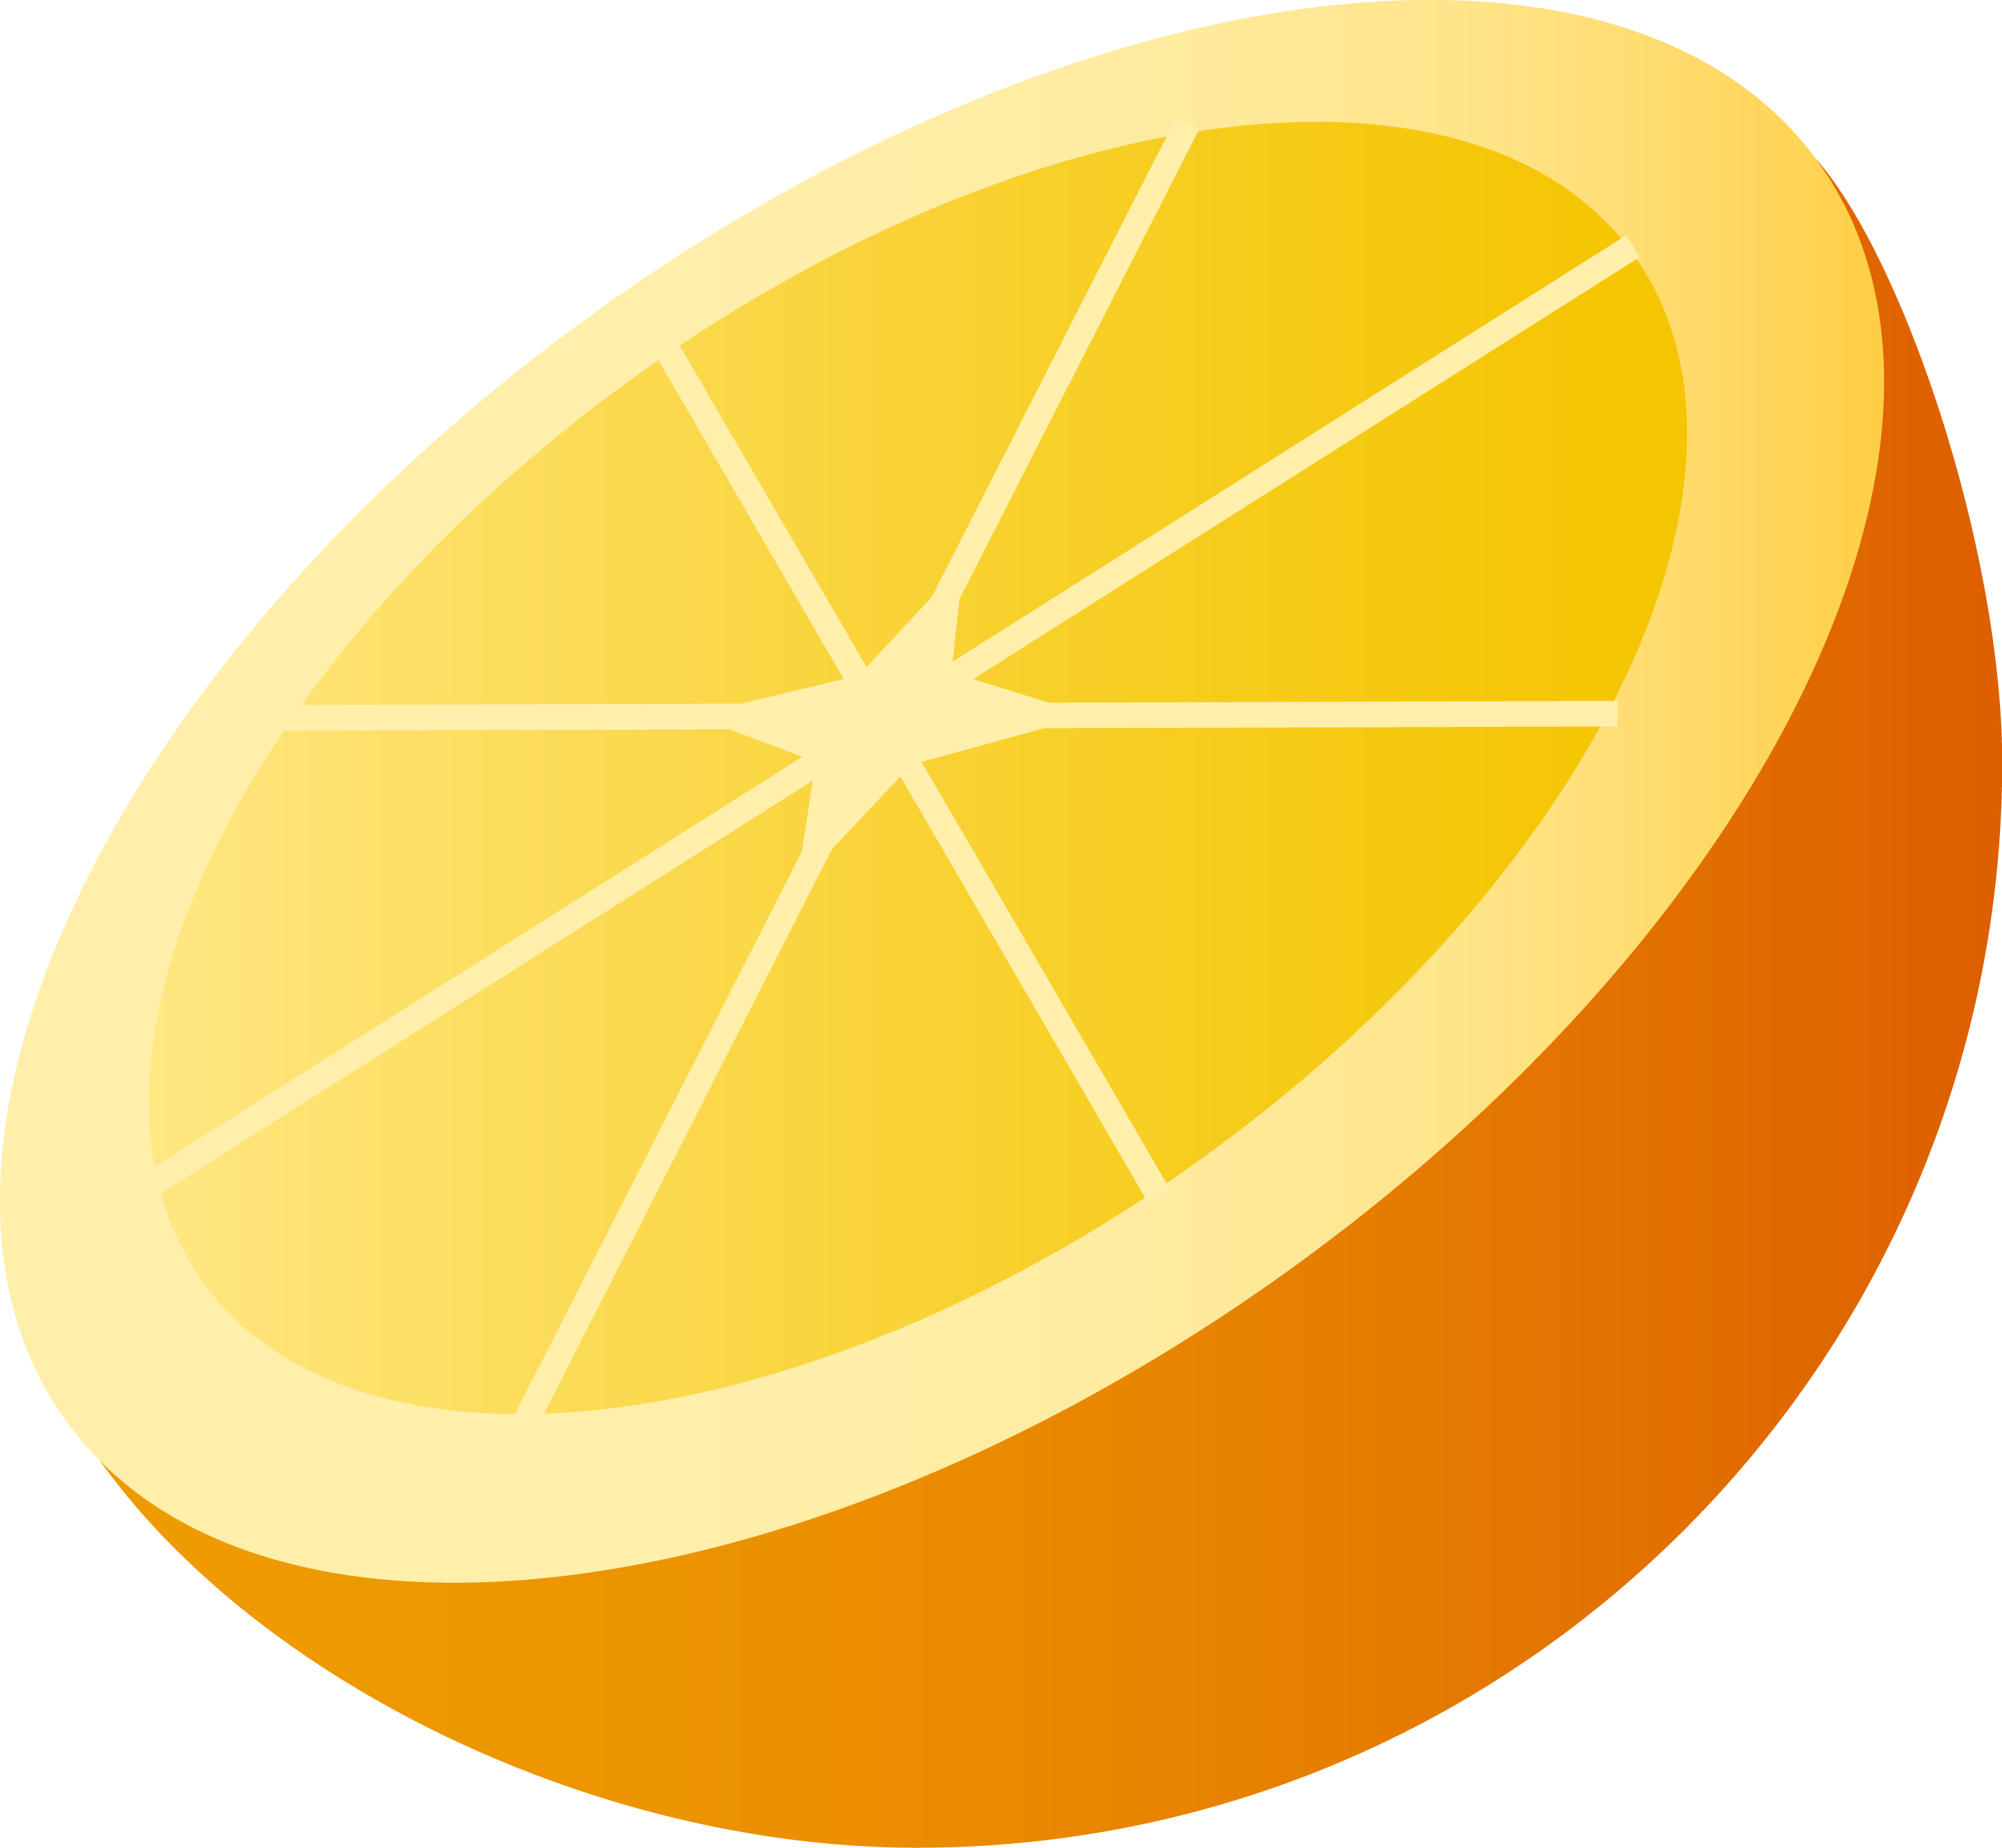 Thirty six isolated stock. Clipart fruit orange